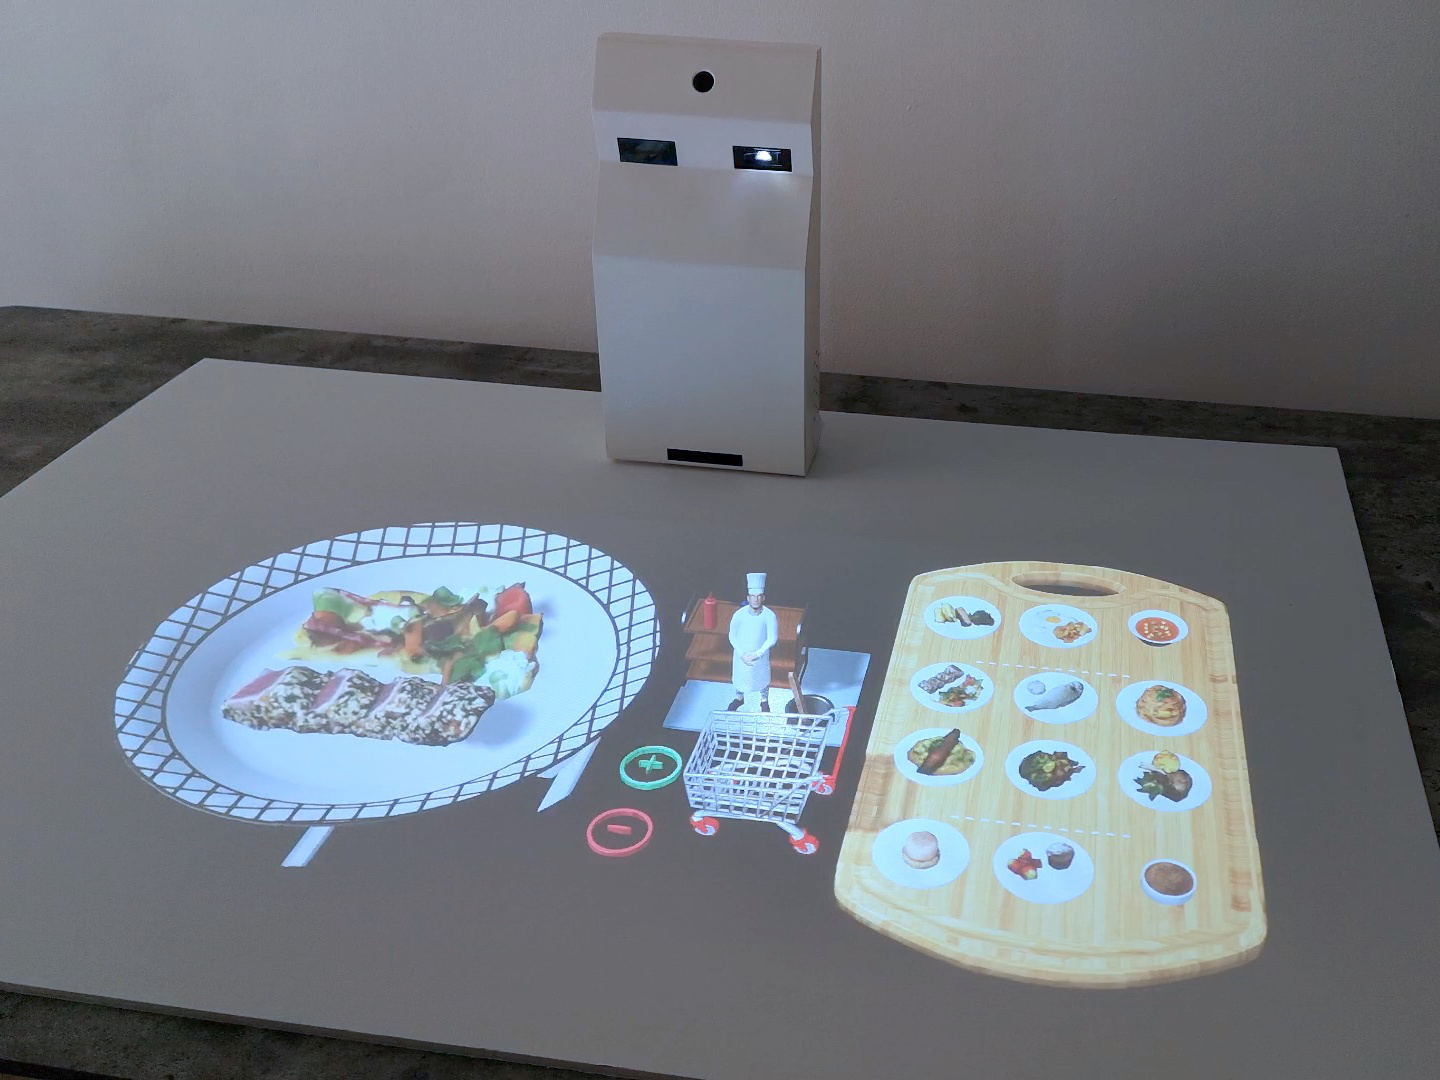 AR menu - The AR lamp projects the dishes of the menu in full size 3D with realistic and tasty details. The guest sees the aesthetic of the preparation and understands the portion sizes.